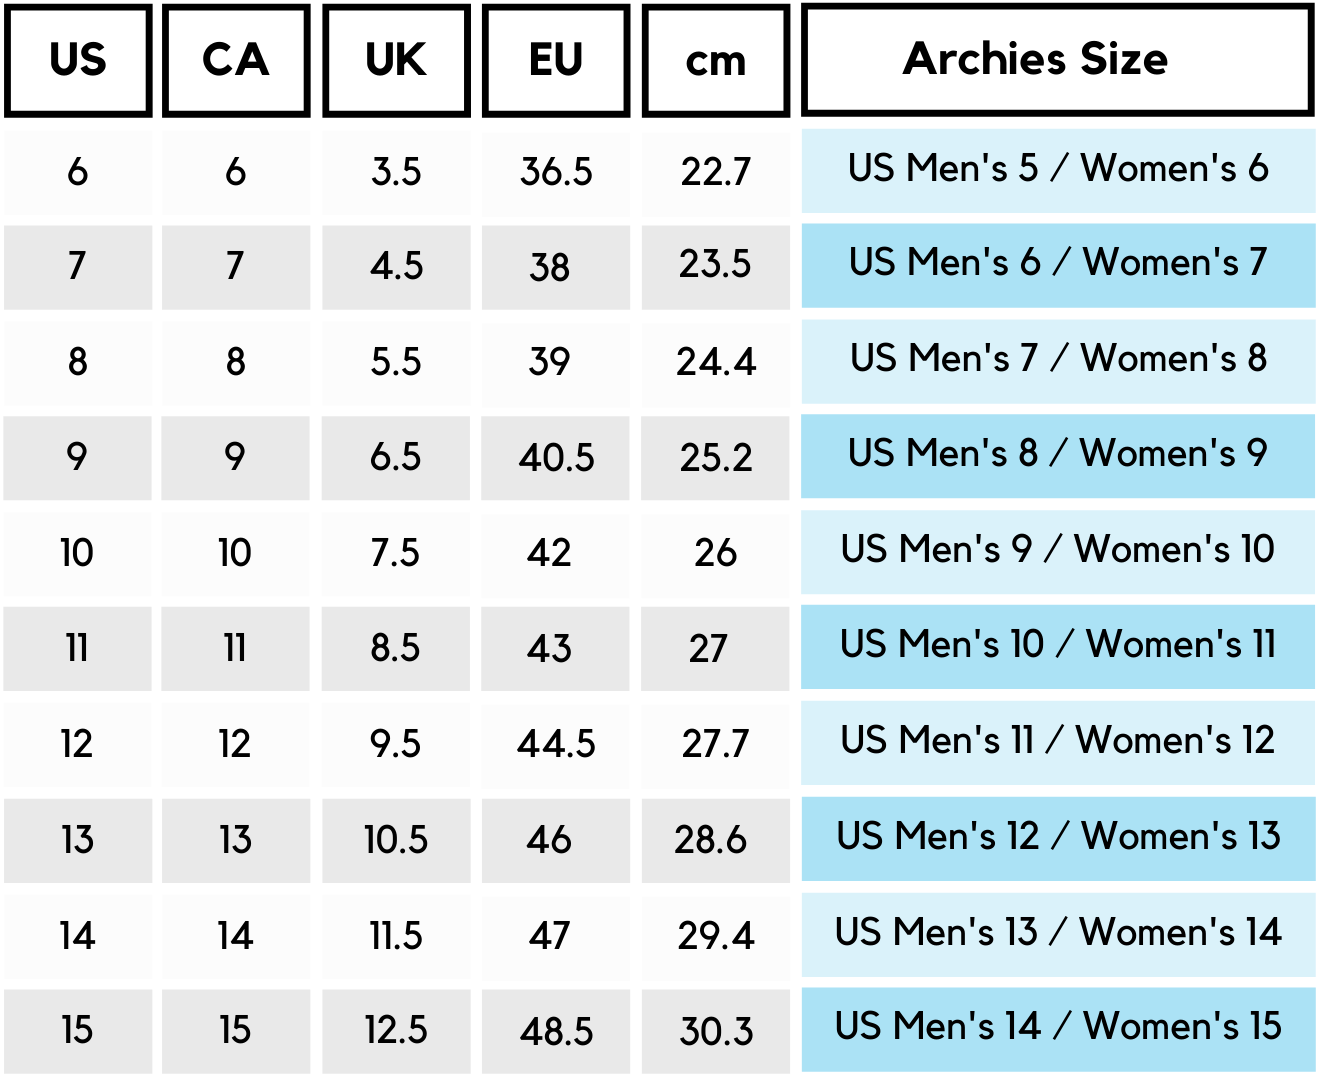 CA Archies Women's Size Chart